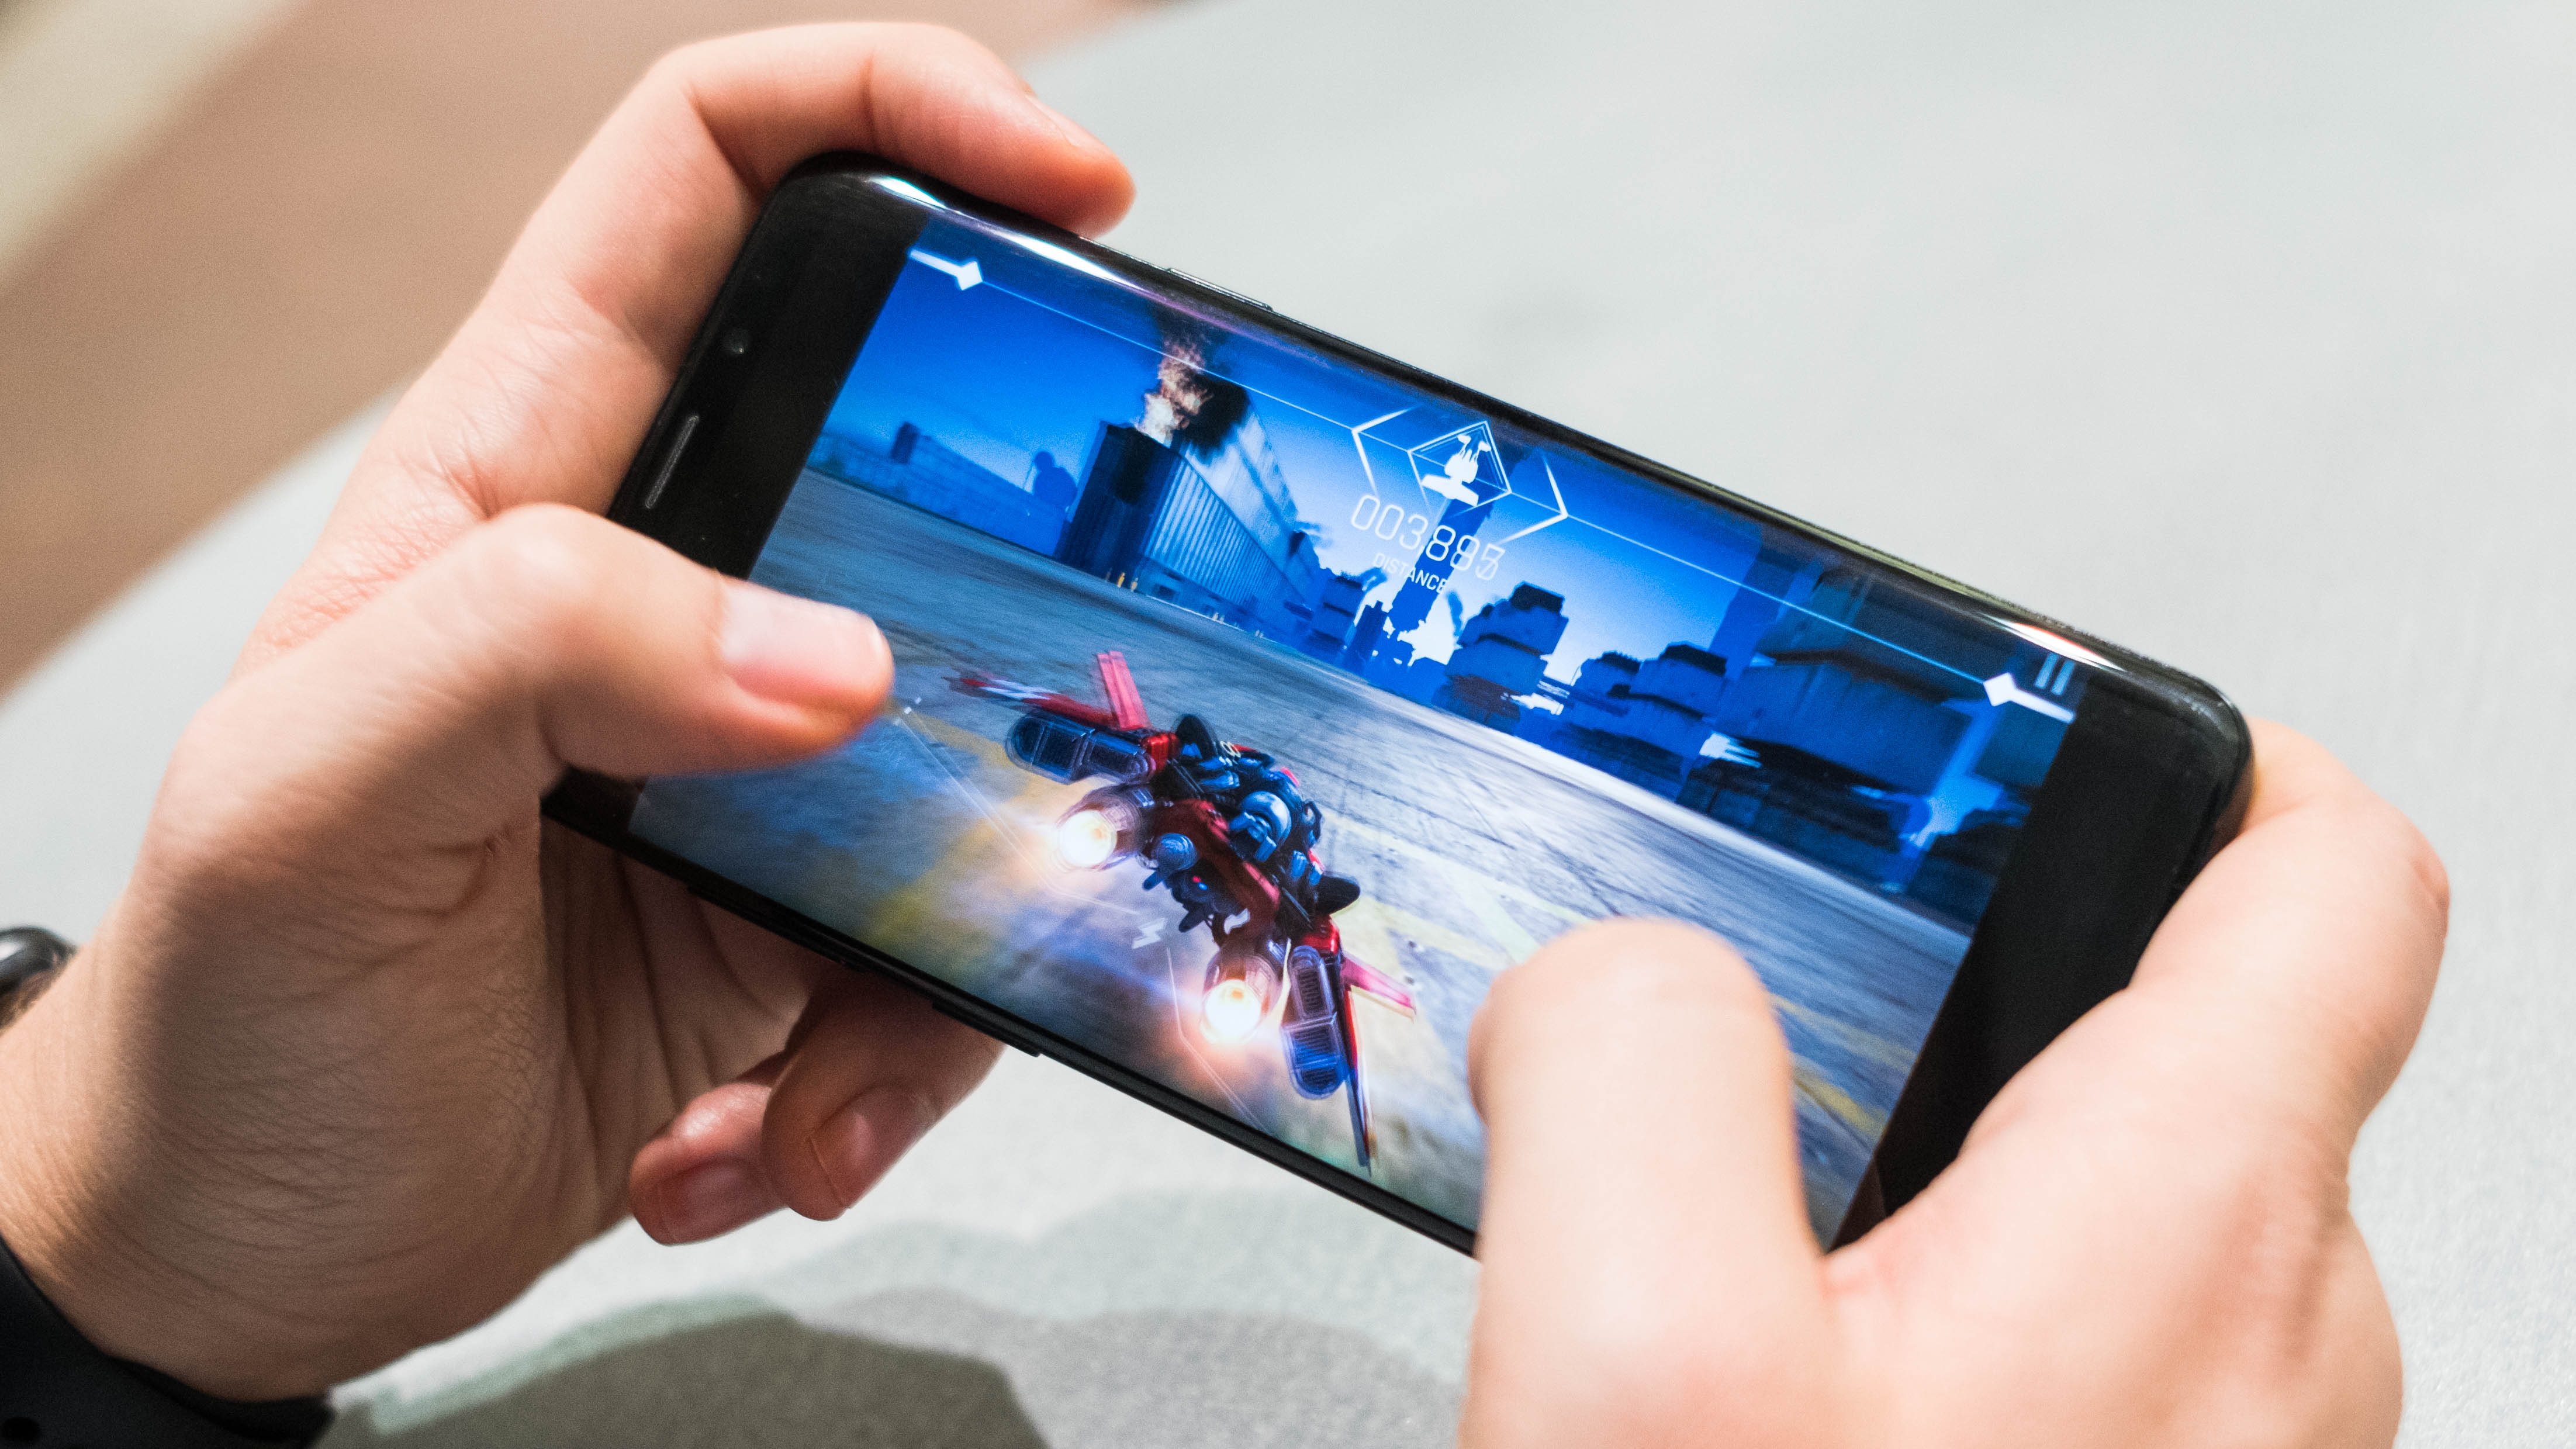 Asus Rog Phone 5 Gaming Phone may launch in March, let's see